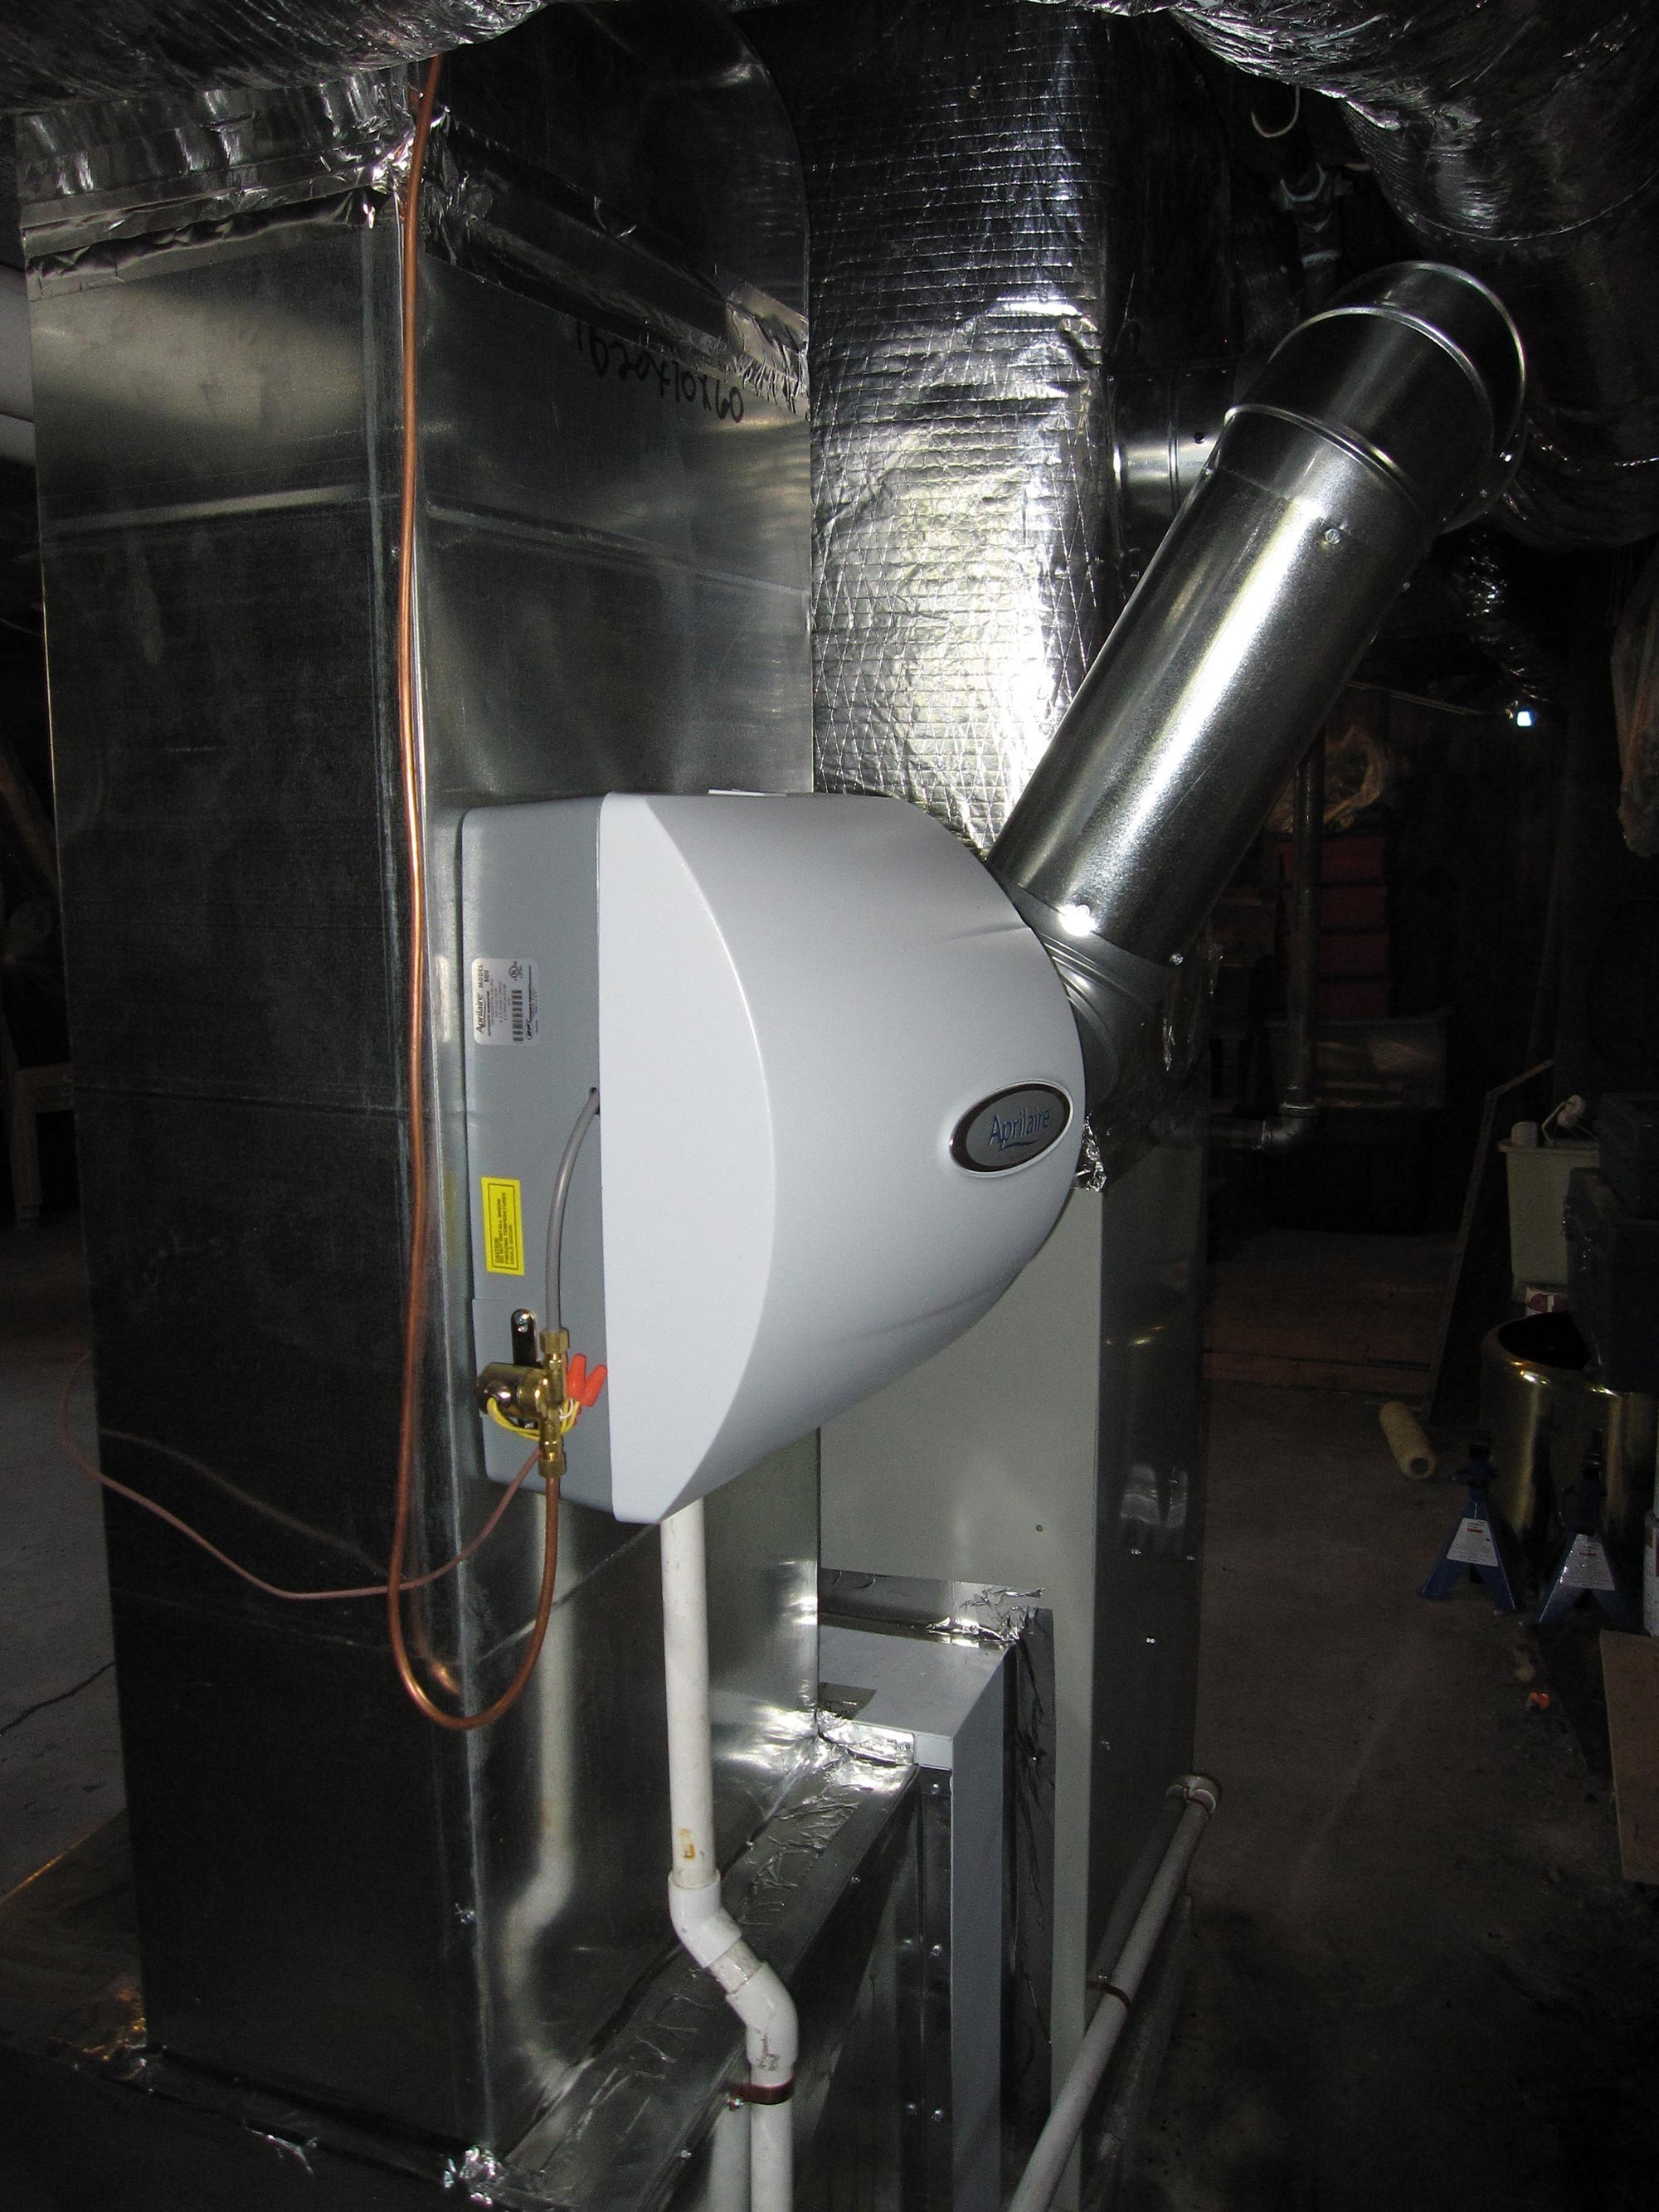 Gas Furnace with Air Cleaner and Humidifer